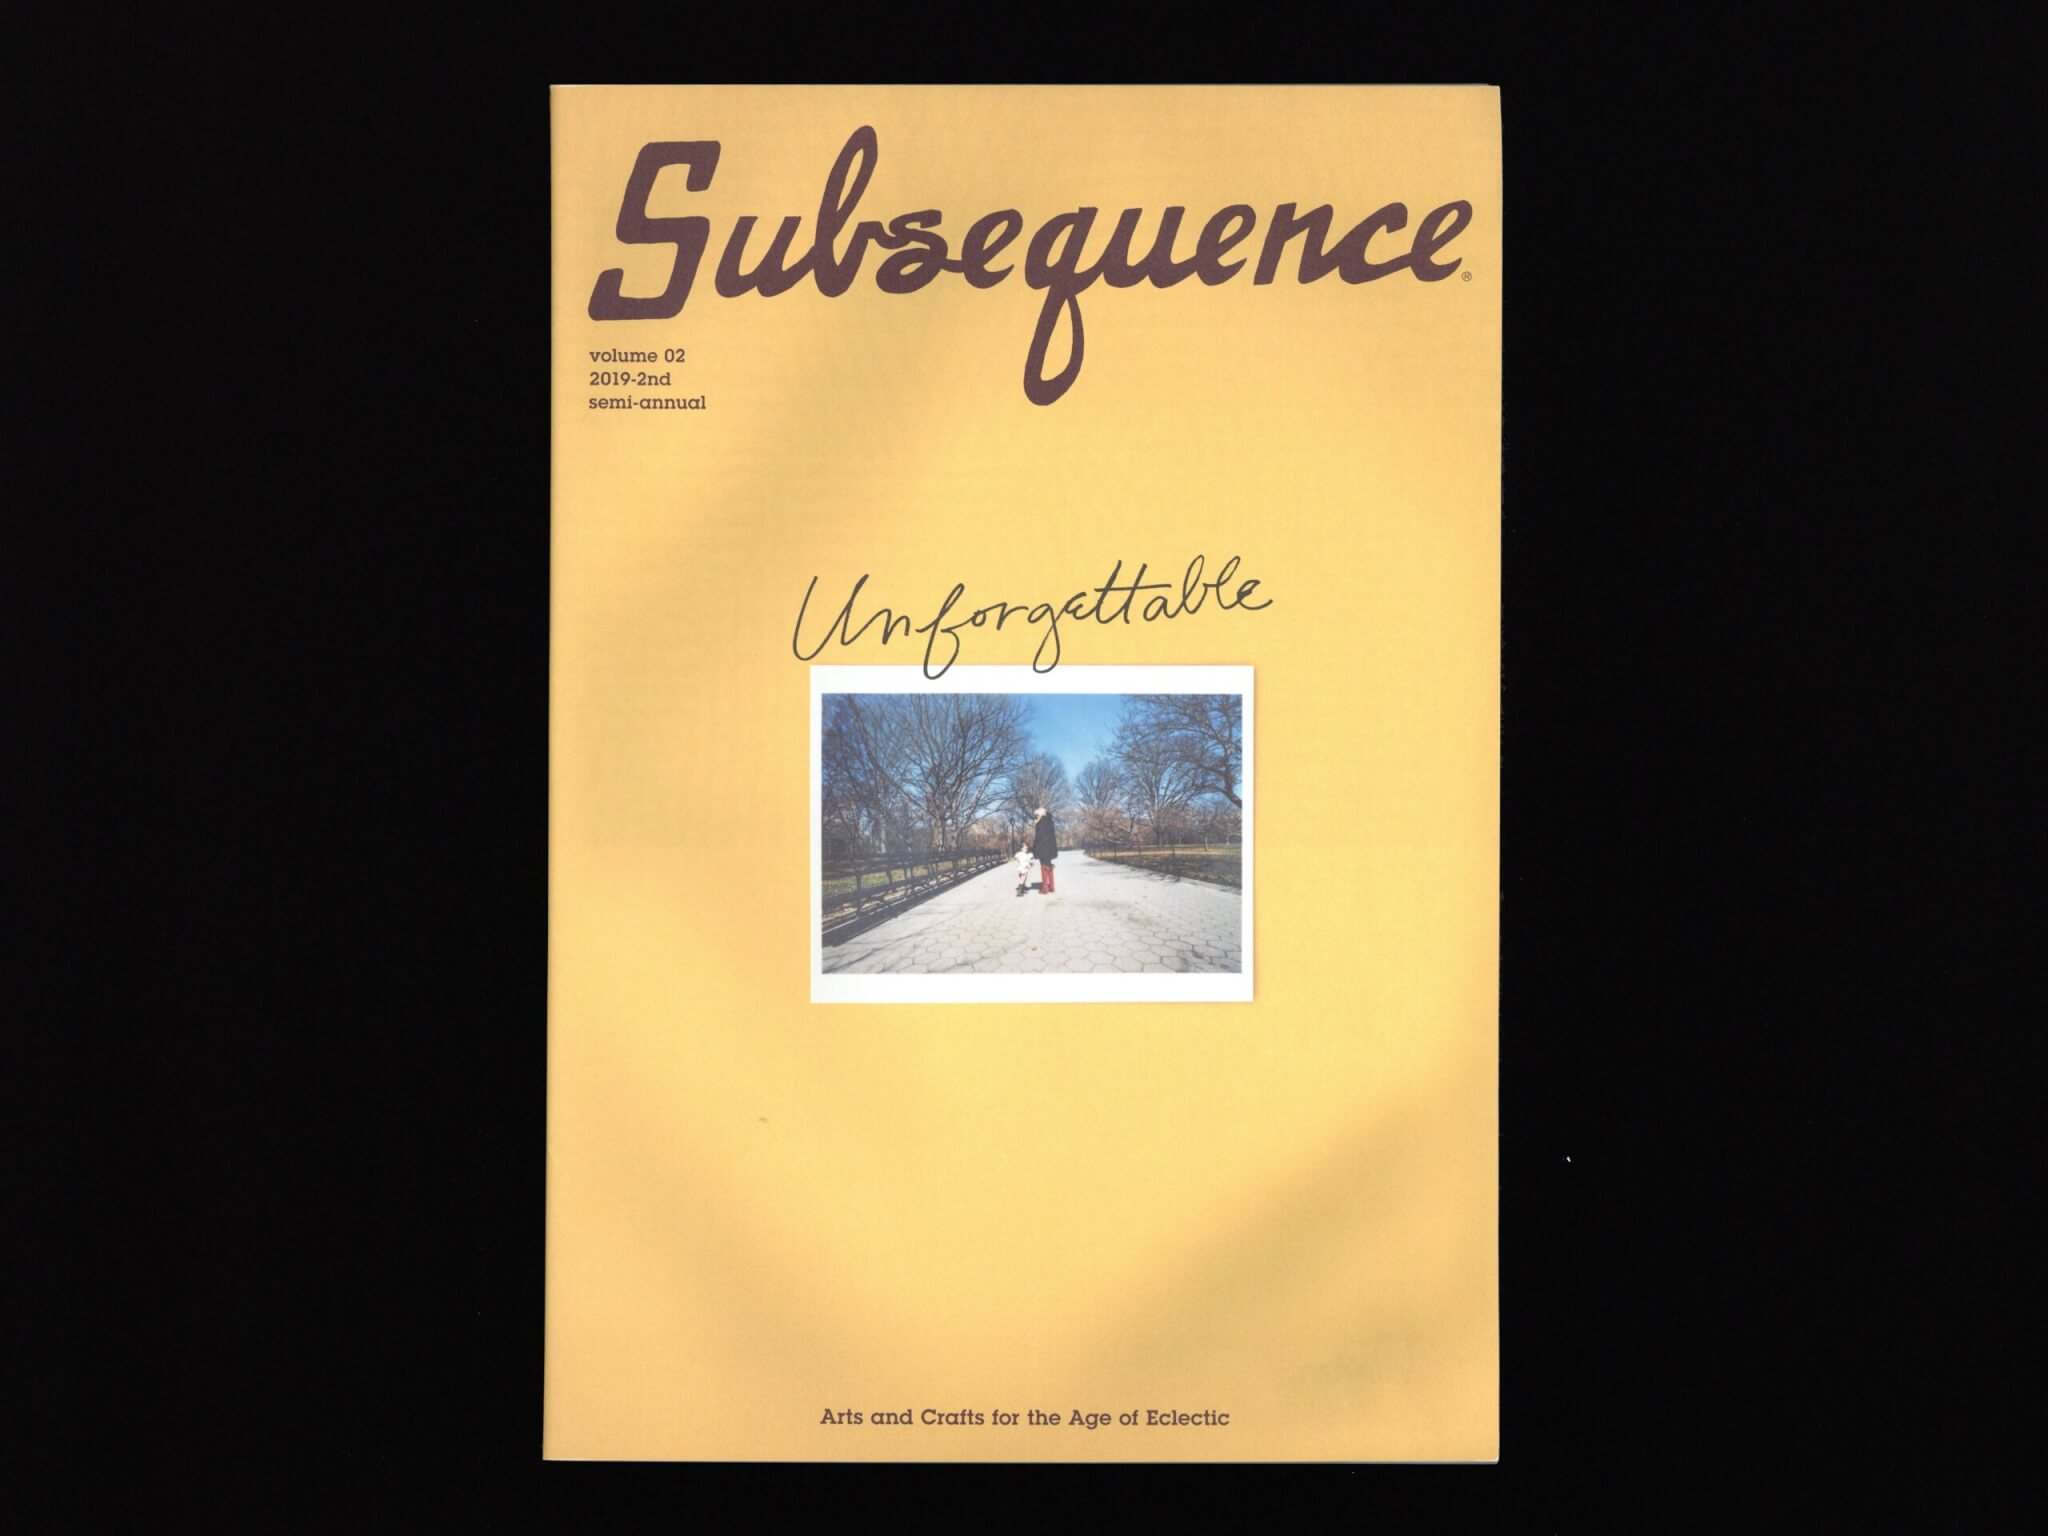 http newdistributionhouse.com image subsequence vol2 0